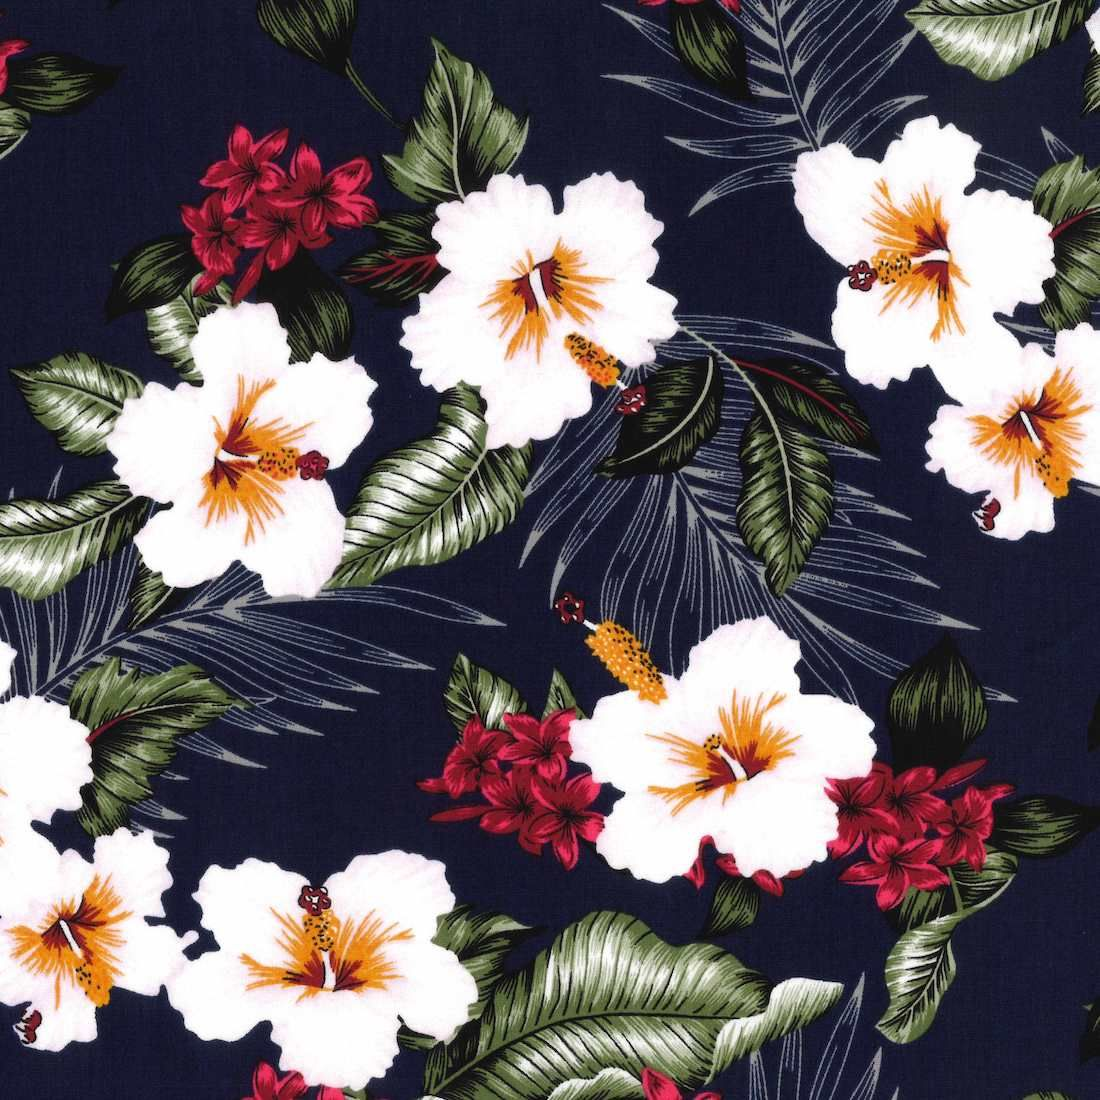 Stretch Cotton Fabric - Tropical Flowers On Navy